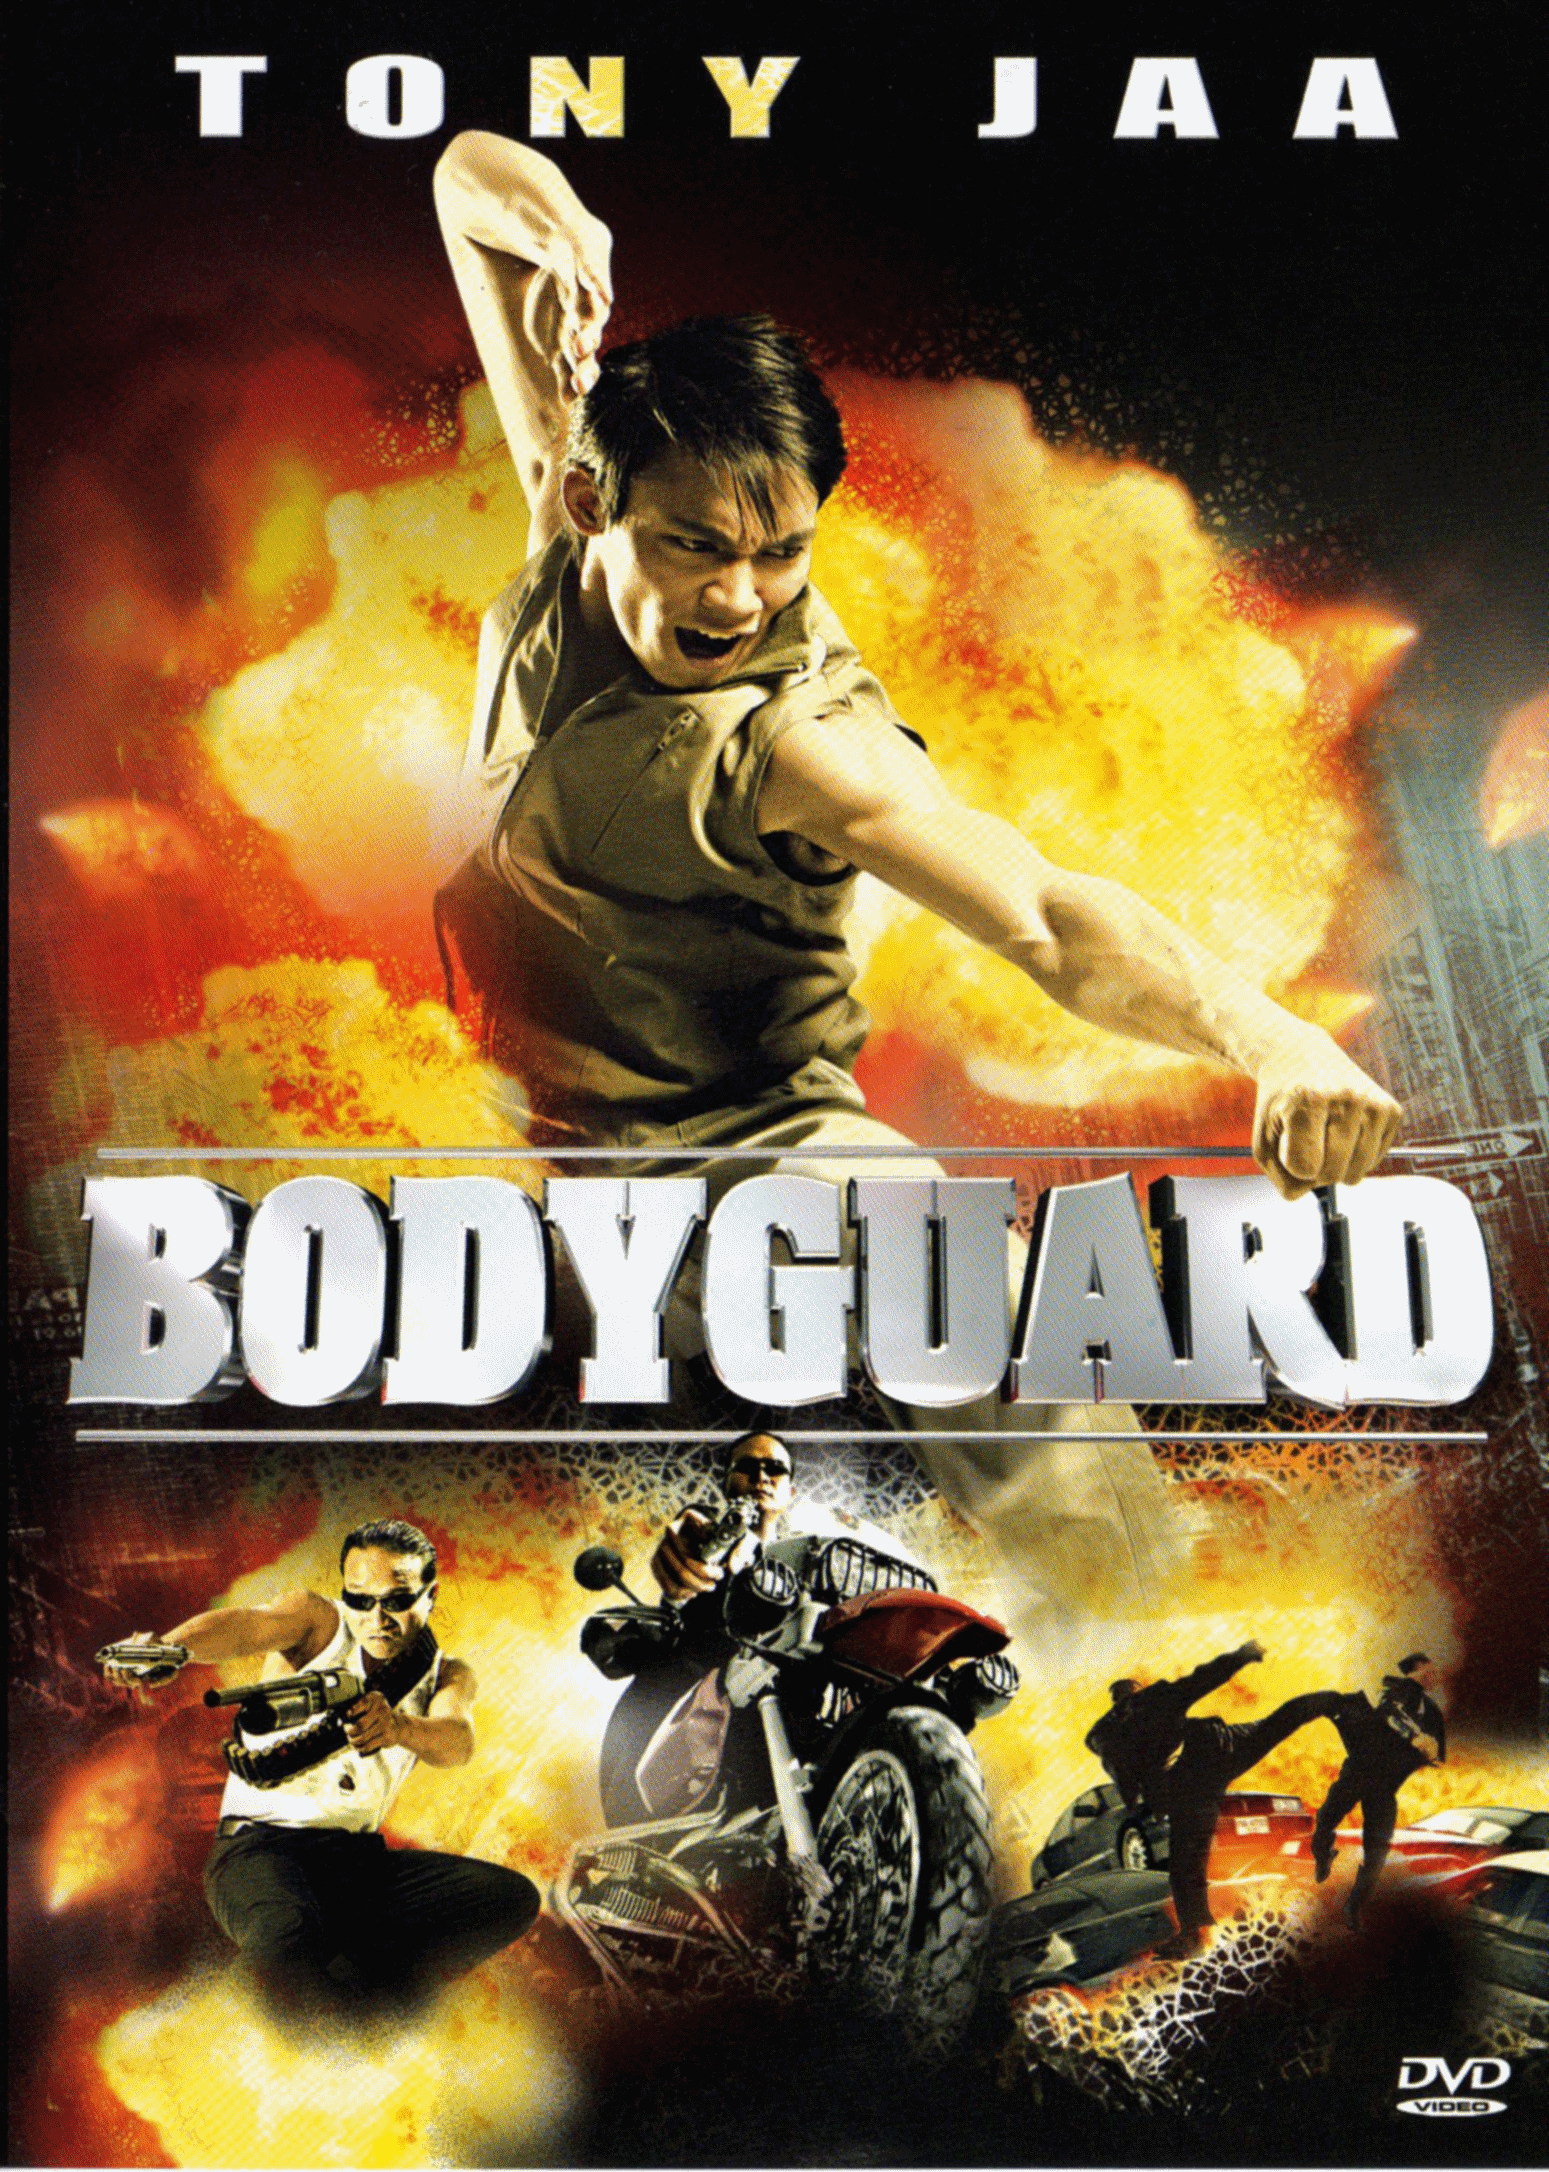 Bodyguard - Film (2004) - SensCritique